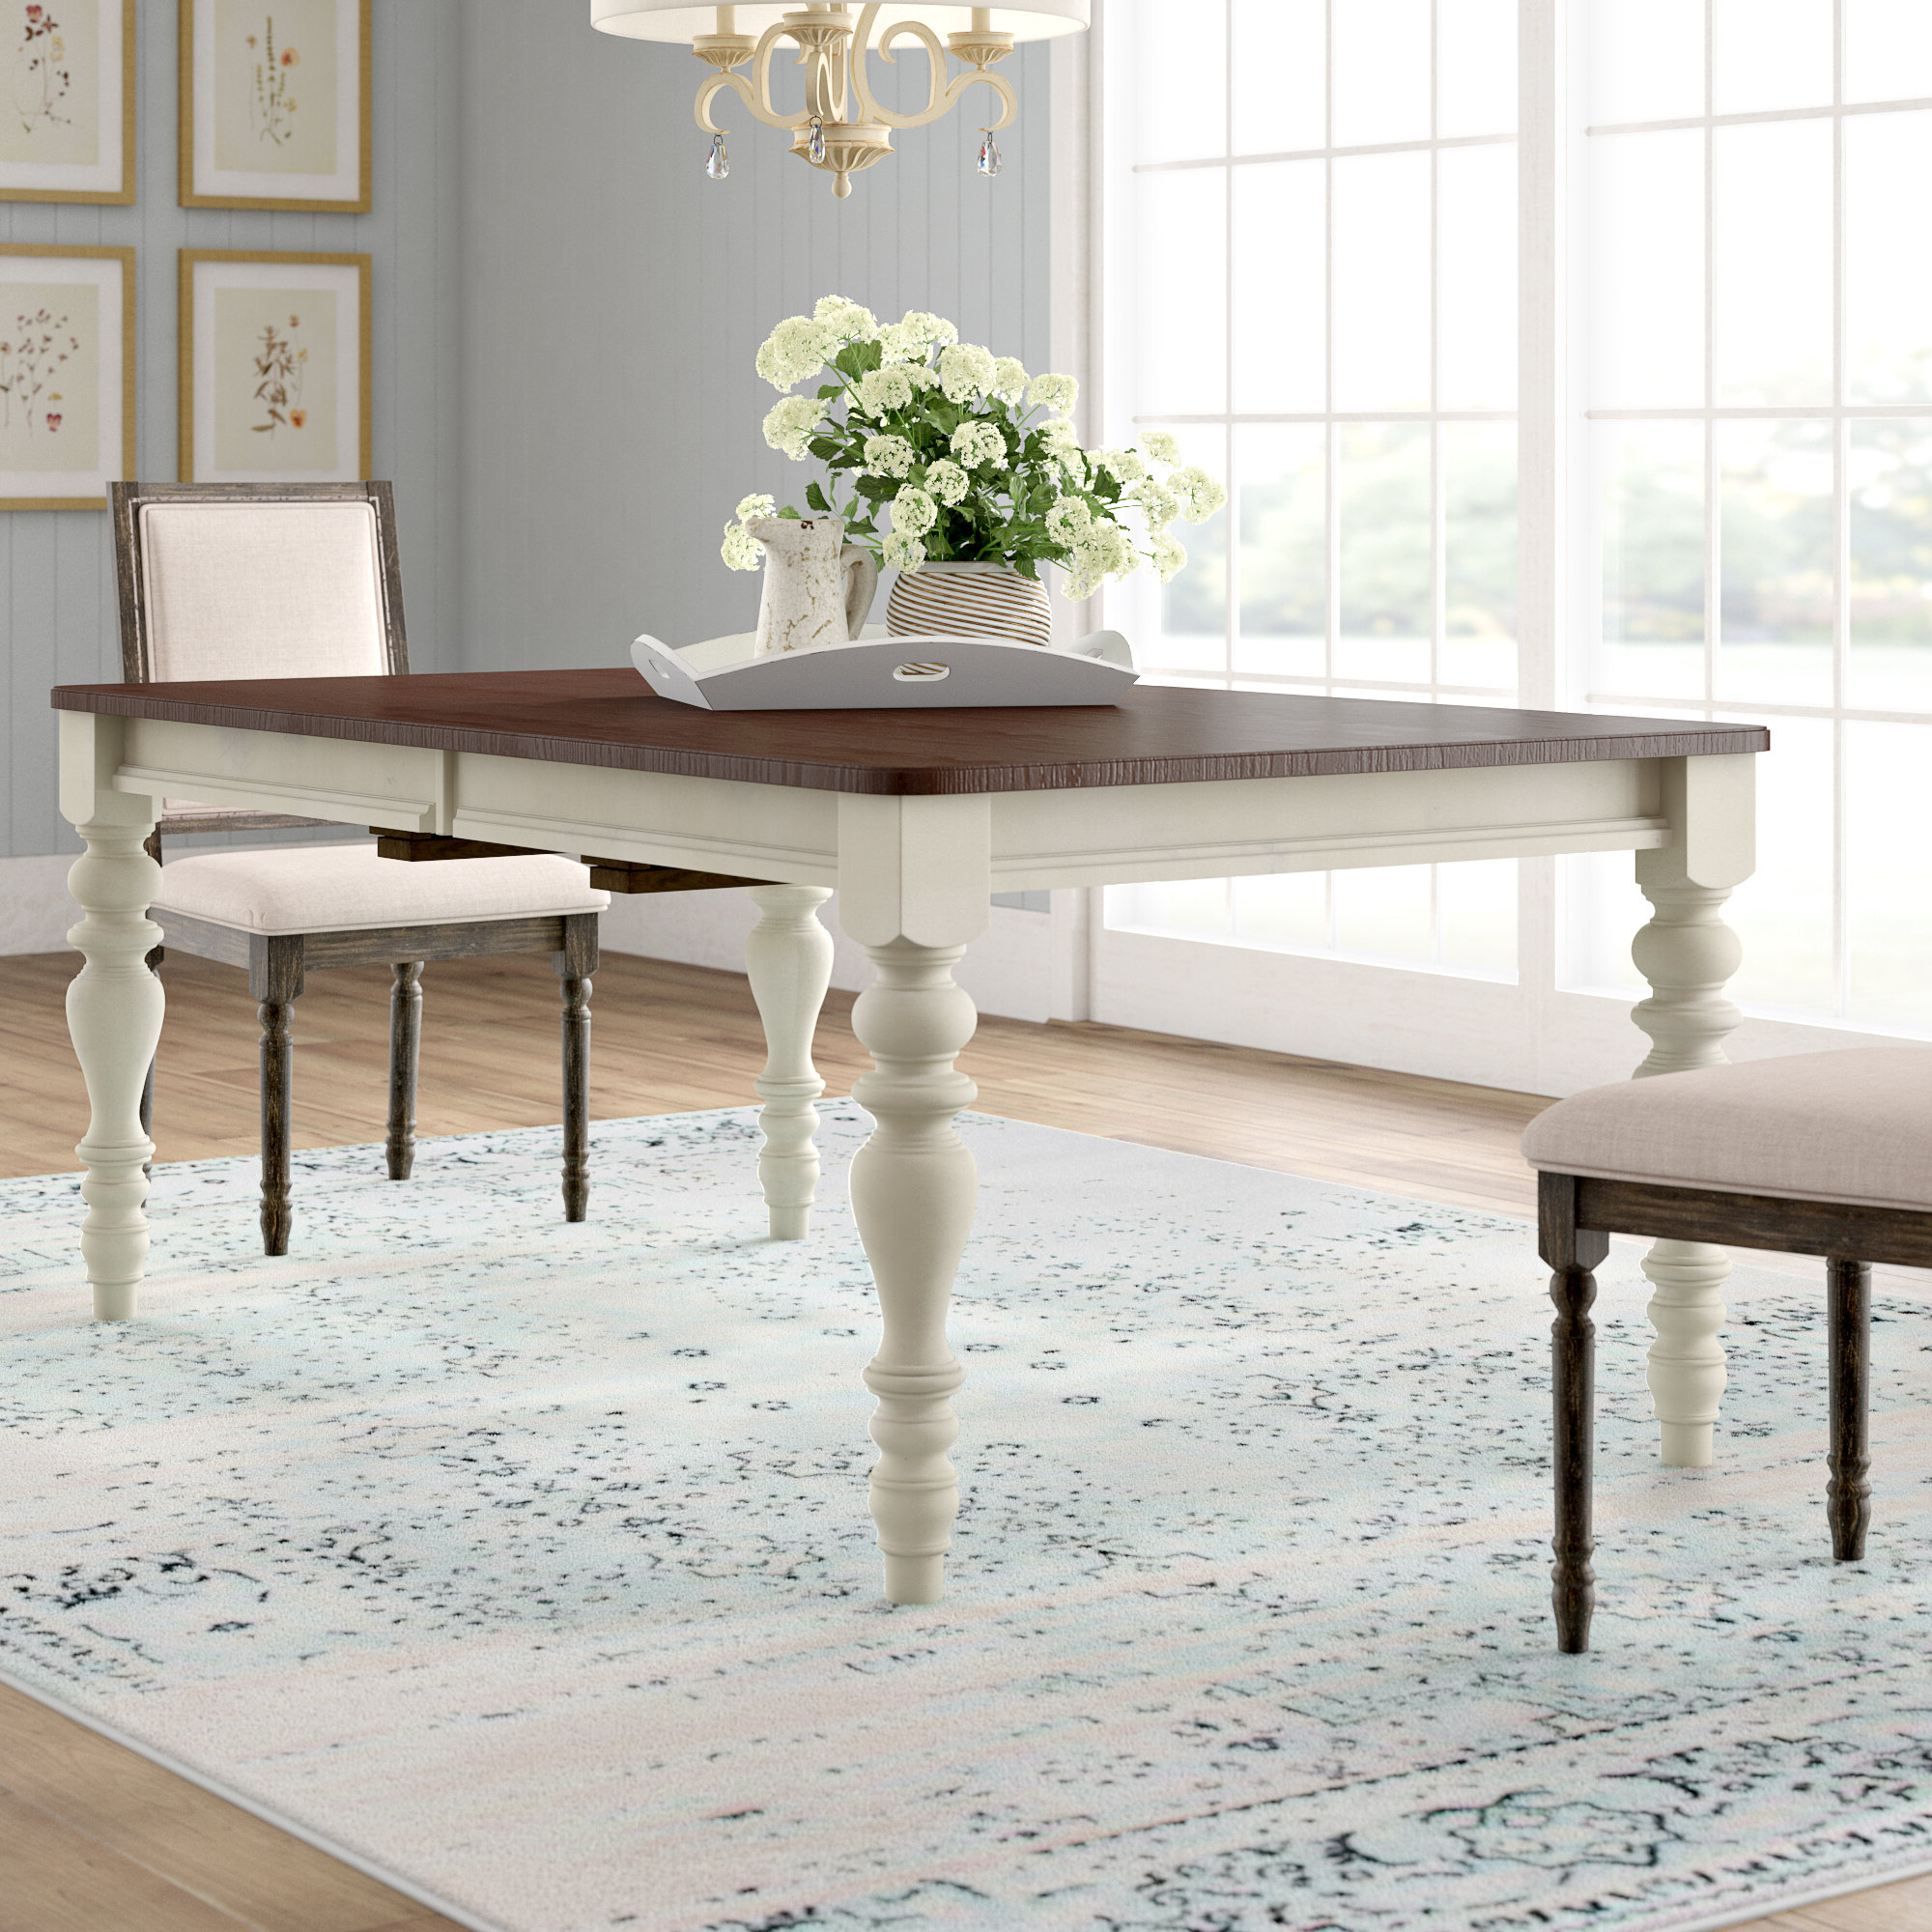 Well Known Wood Kitchen Dining Tables With Removable Center Leaf Regarding Lark Manor Alise Extendable Solid Wood Dining Table (View 13 of 30)